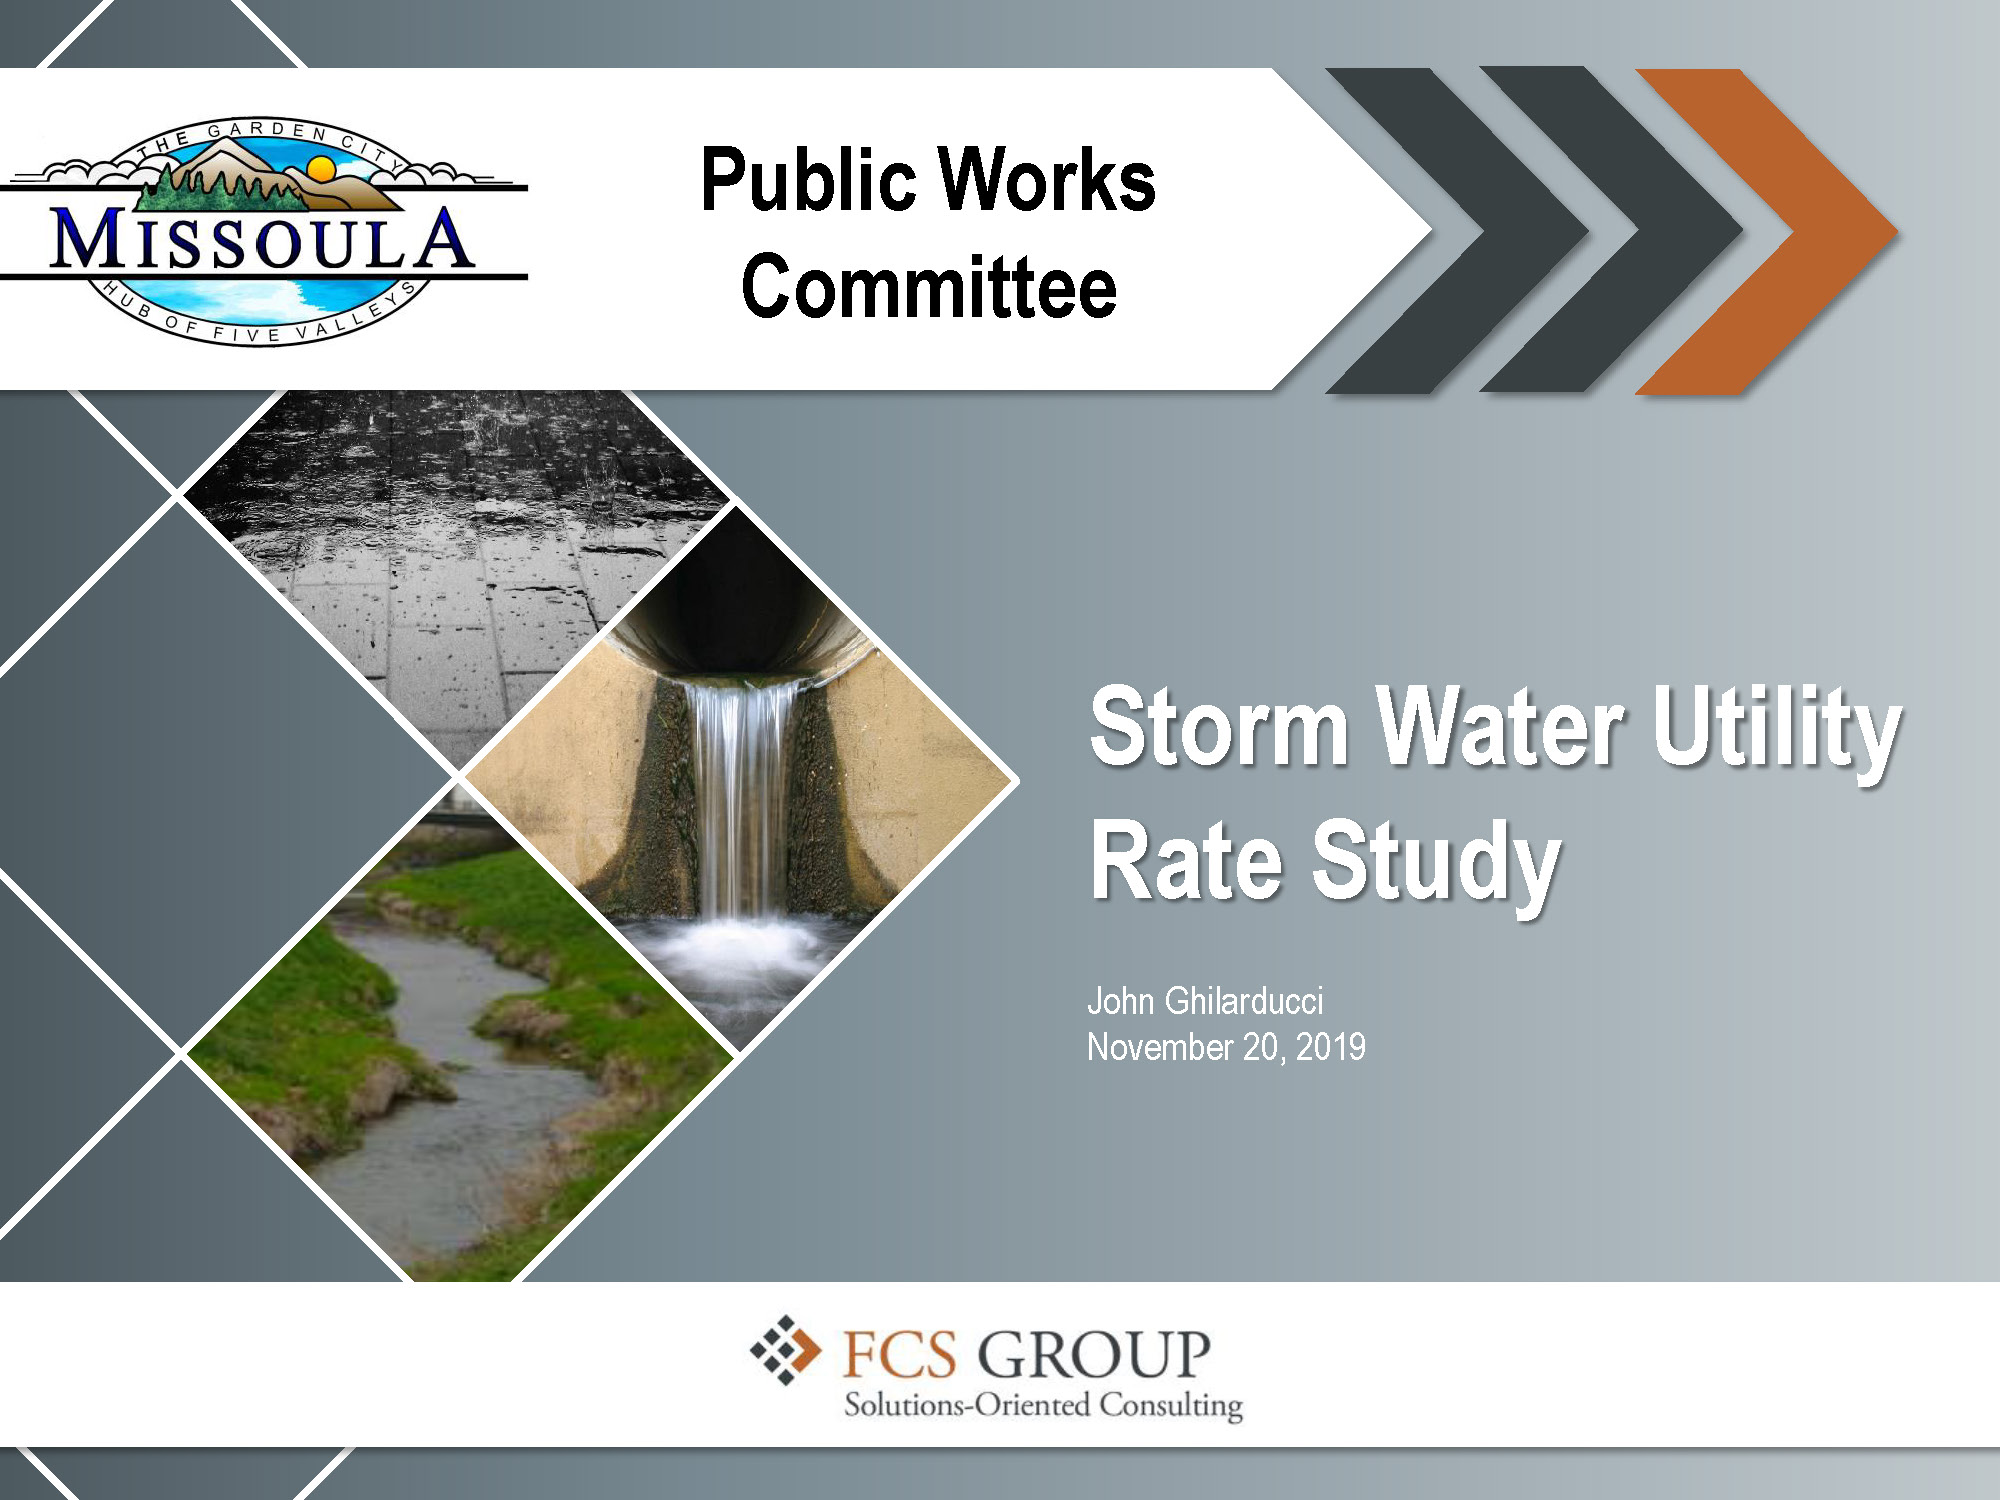 Missoula Storm Water Rate Study link to powerpoint presentation. Opens in new window